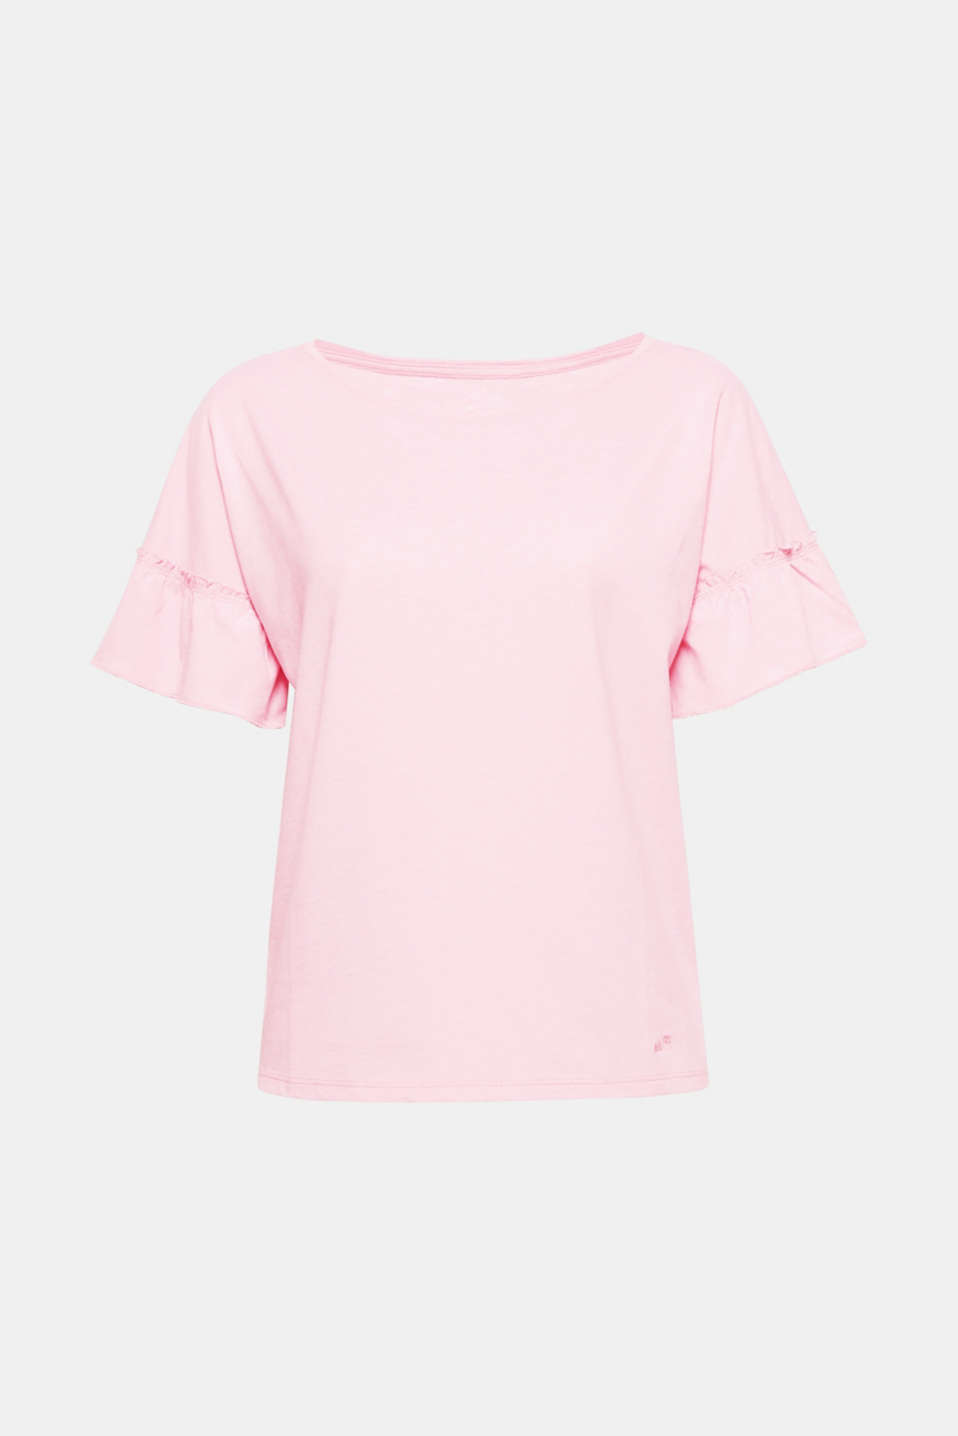 The trendy boxy silhouette with fashionable flounce sleeves gives this super soft T-shirt a certain je ne sais quoi!